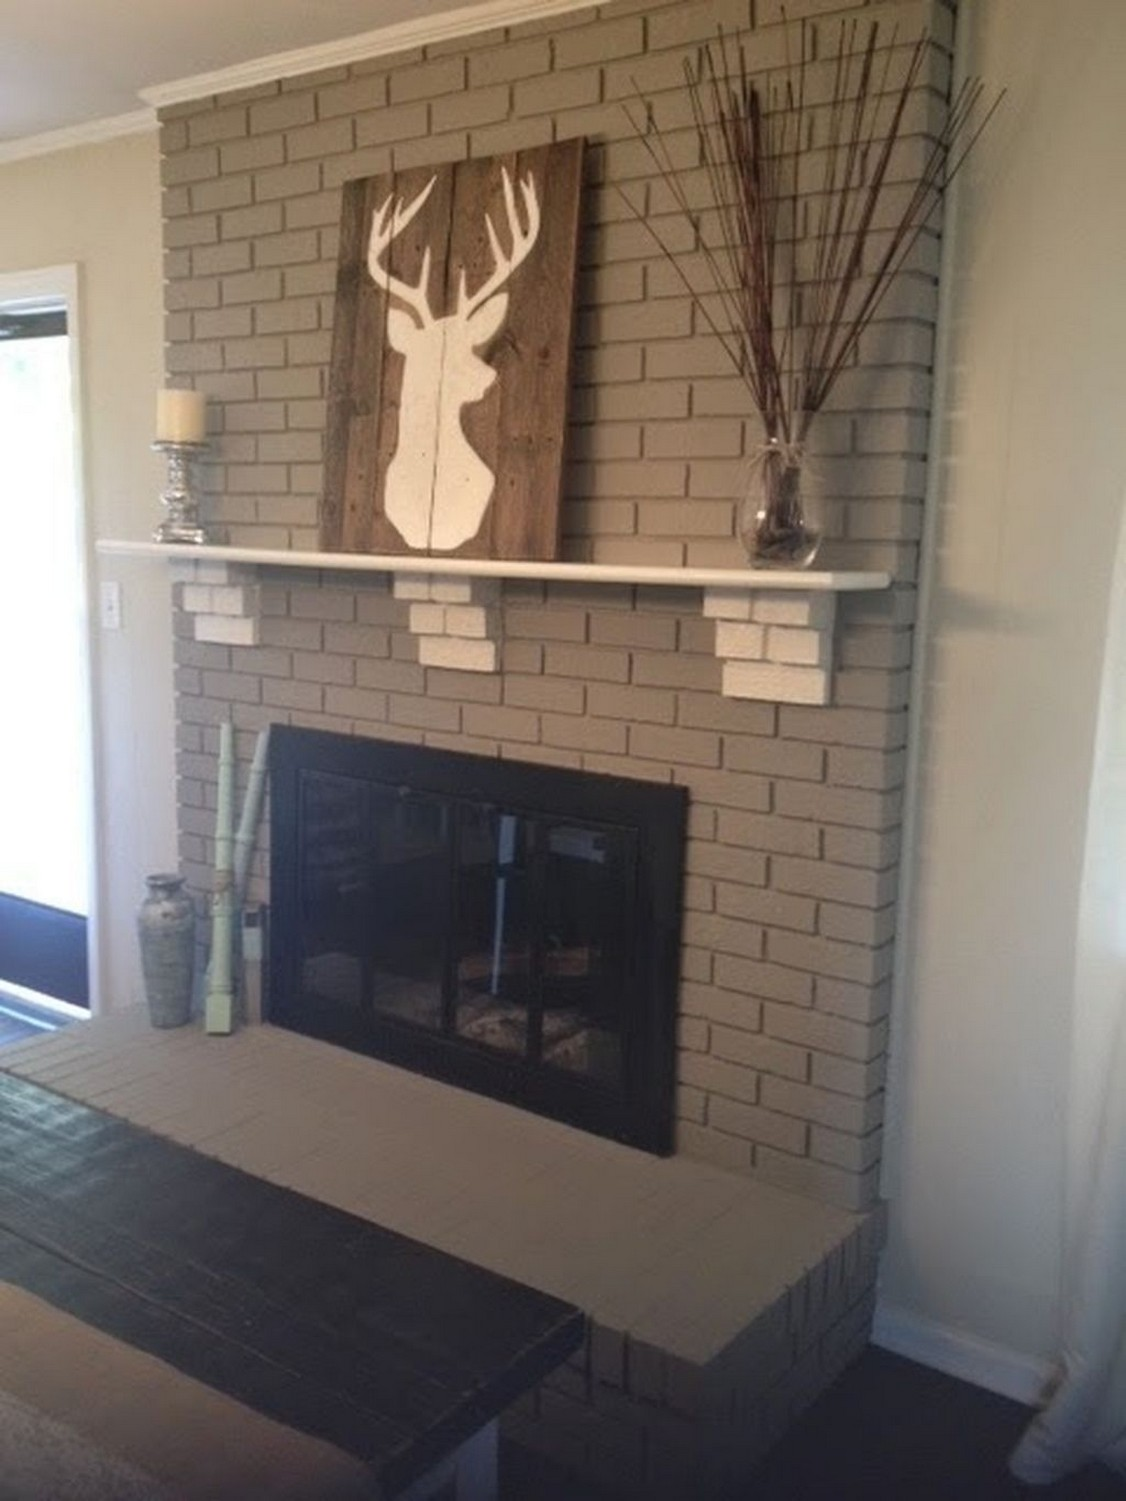 76 Stone Fireplaces The Hearth Is The Heart of The Home 36